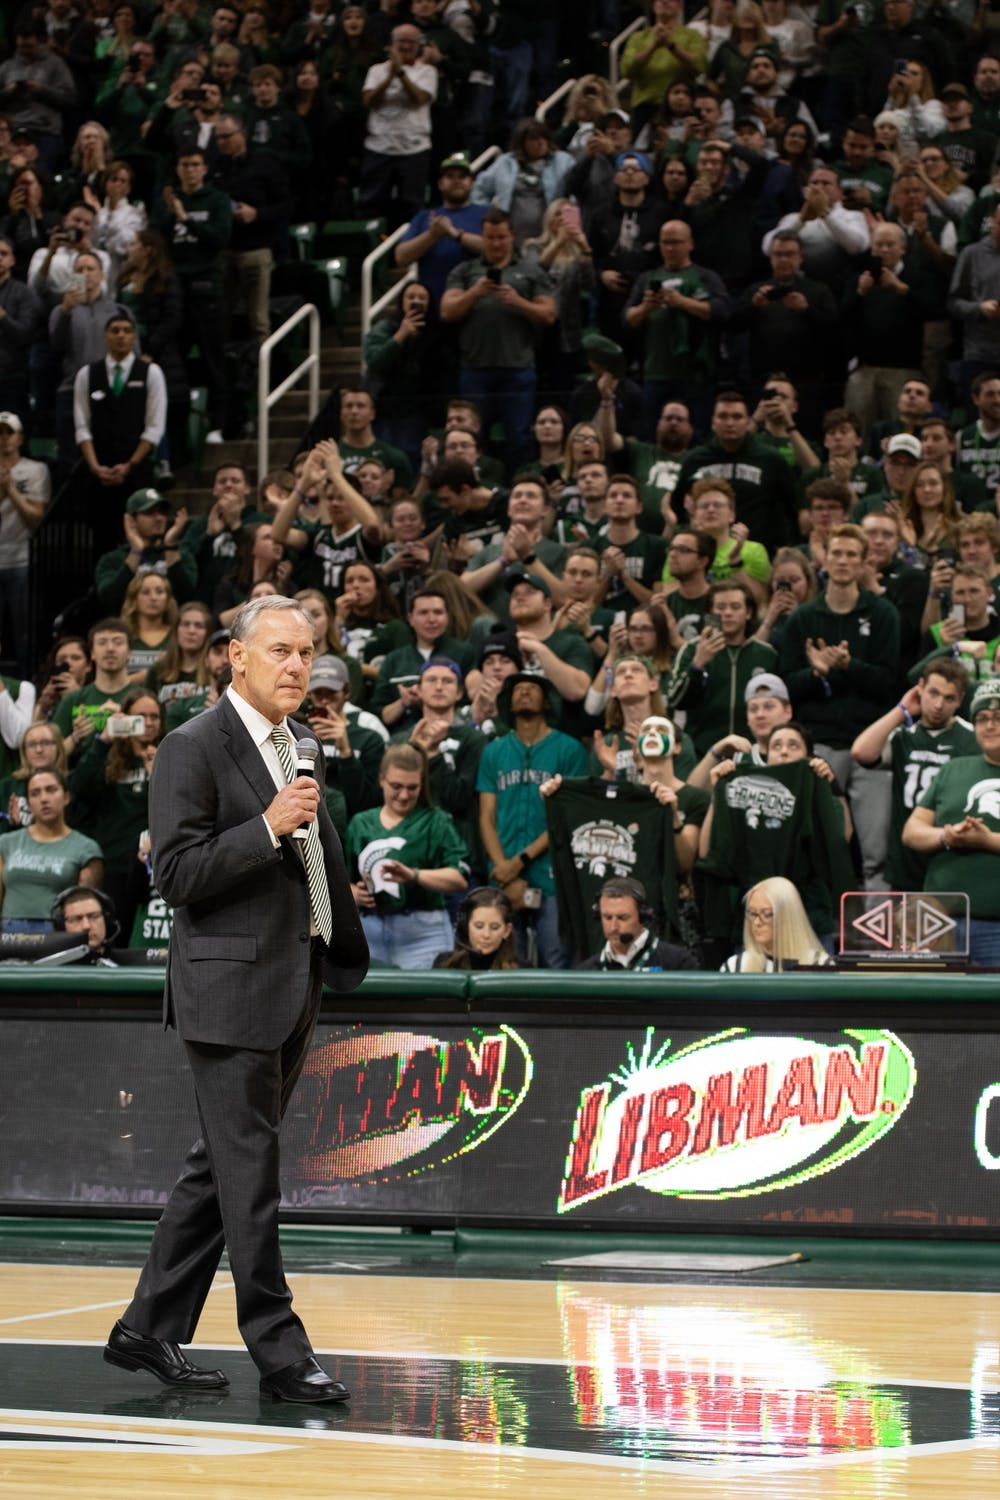 Mark Dantonio addresses the crowd during halftime of a basketball game at the Breslin Center on Feb. 4, 2020.